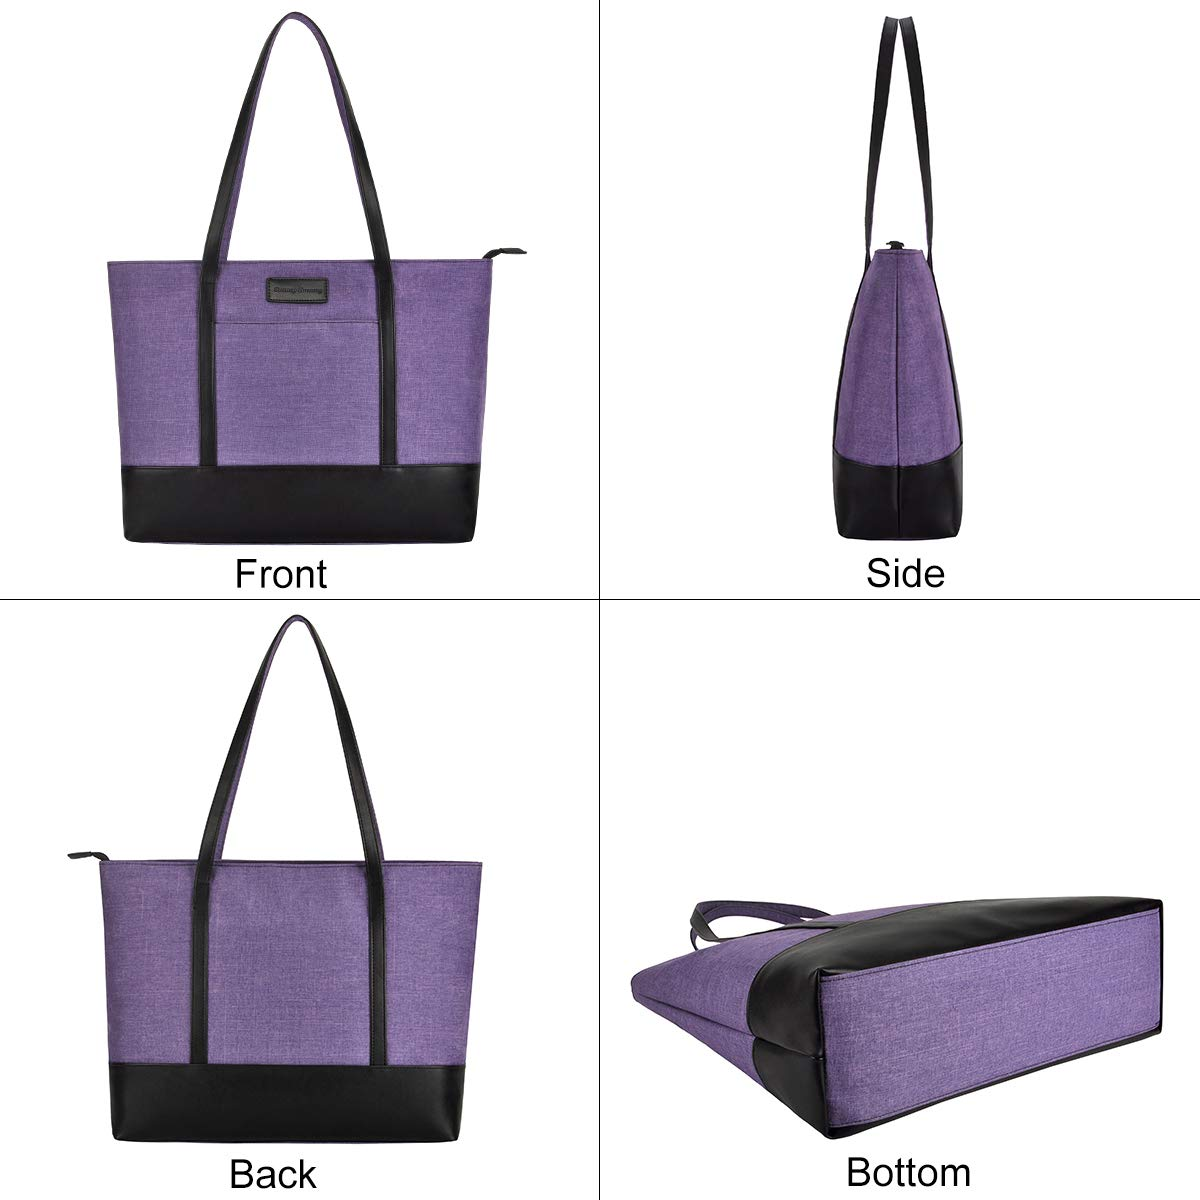 Laptop Tote Bag,Fits 15.6 Inch Laptop,Womens Lightweight Water Resistant Nylon Tote Bag Shoulder Bag Ideal for Her(C-Purple) by Sunny Snowy (Image #5)